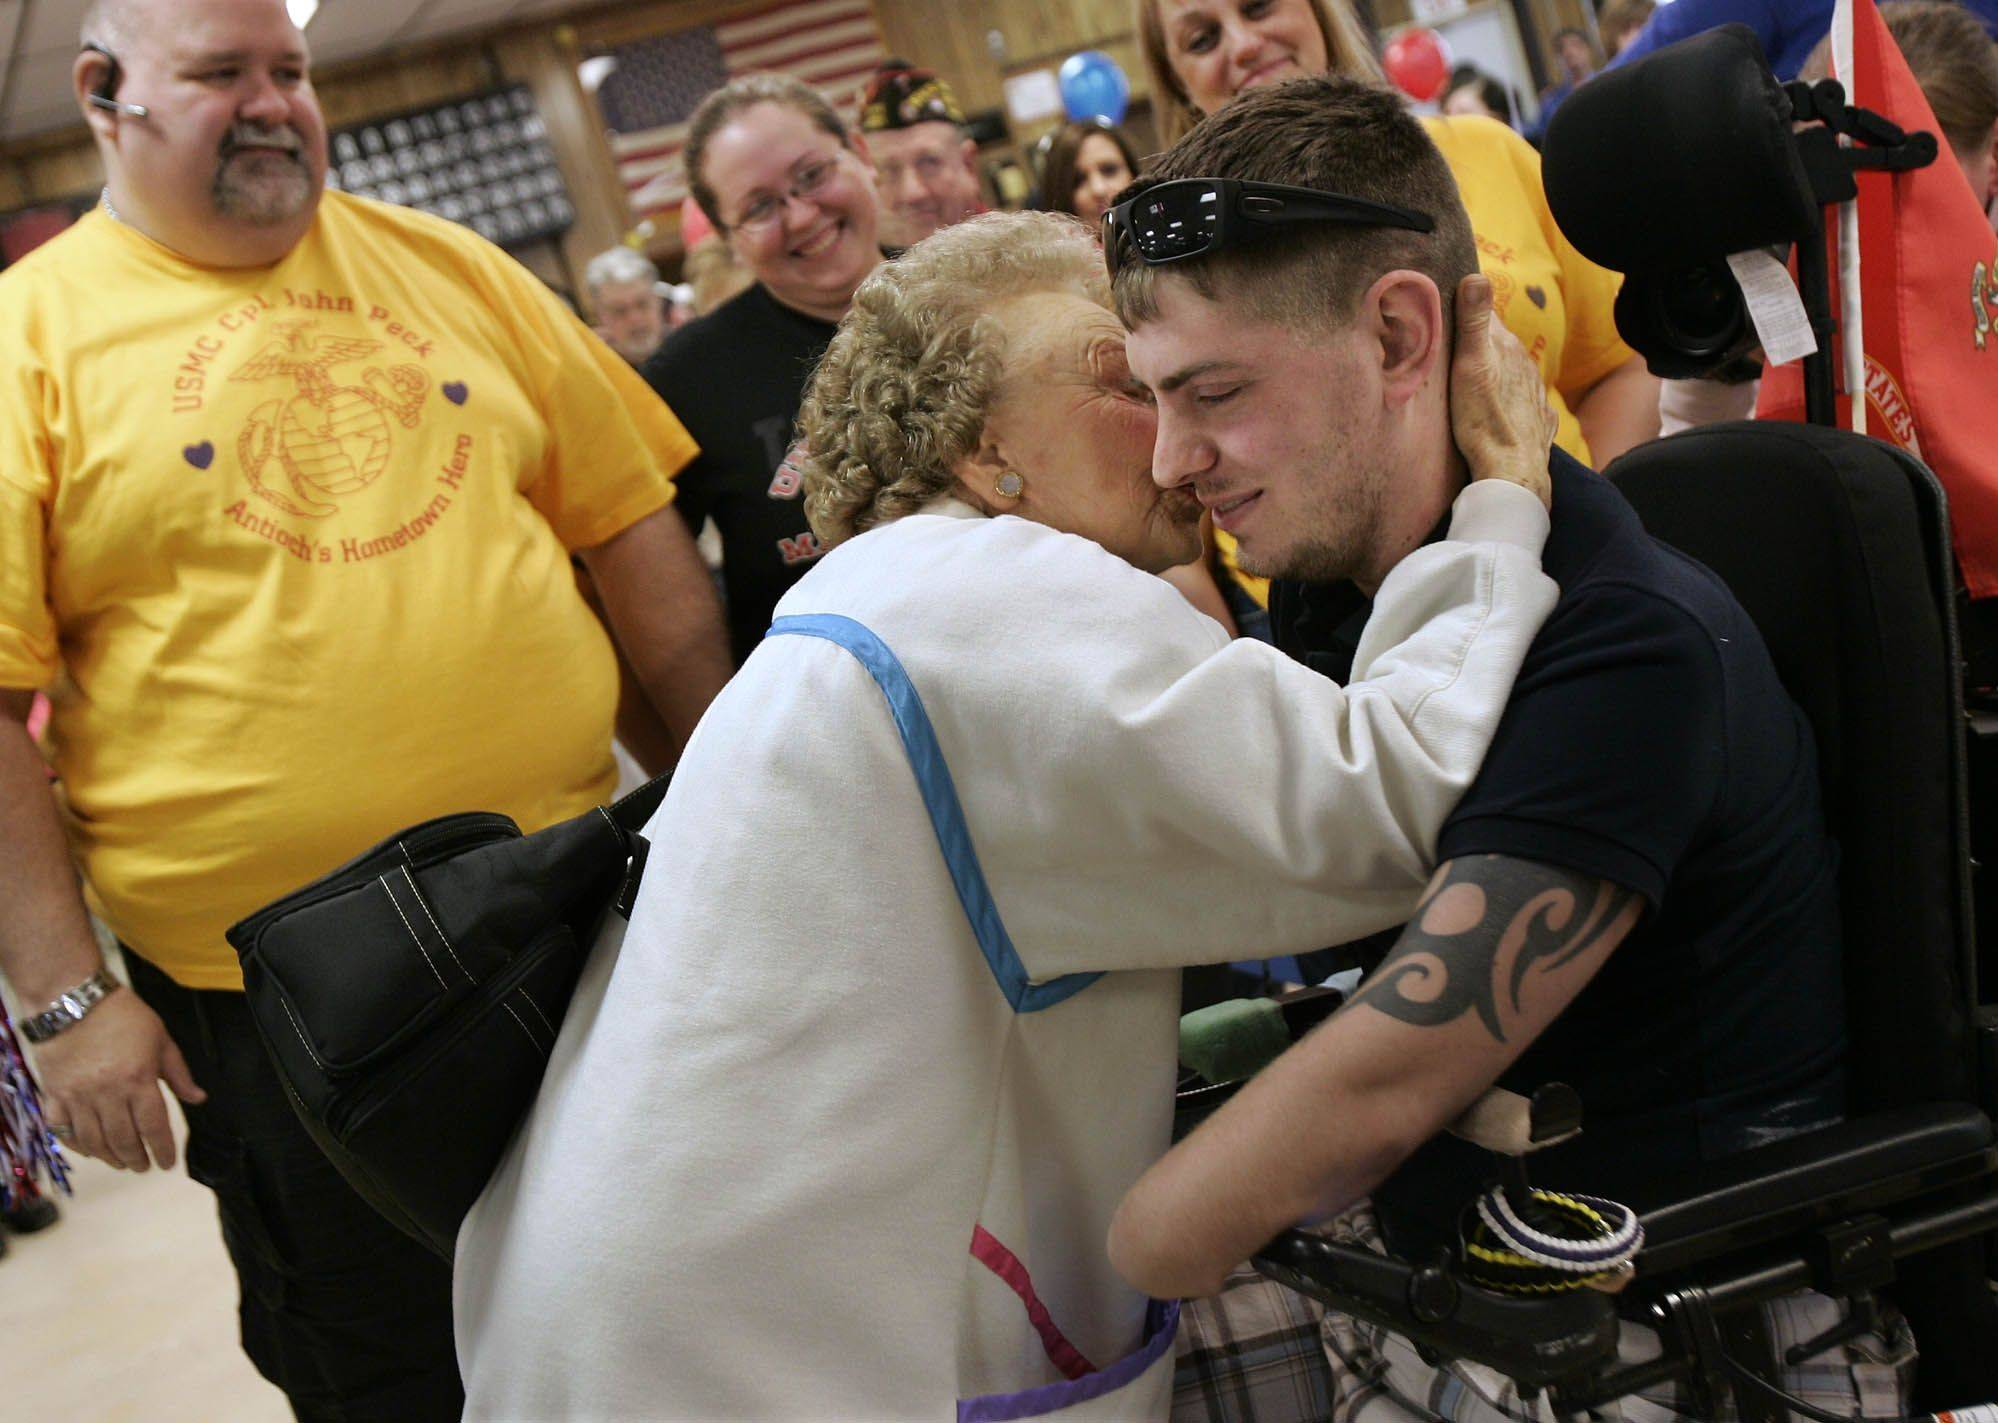 U.S. Marine Cpl. John Peck receives a kiss from Eleanor Hauser.